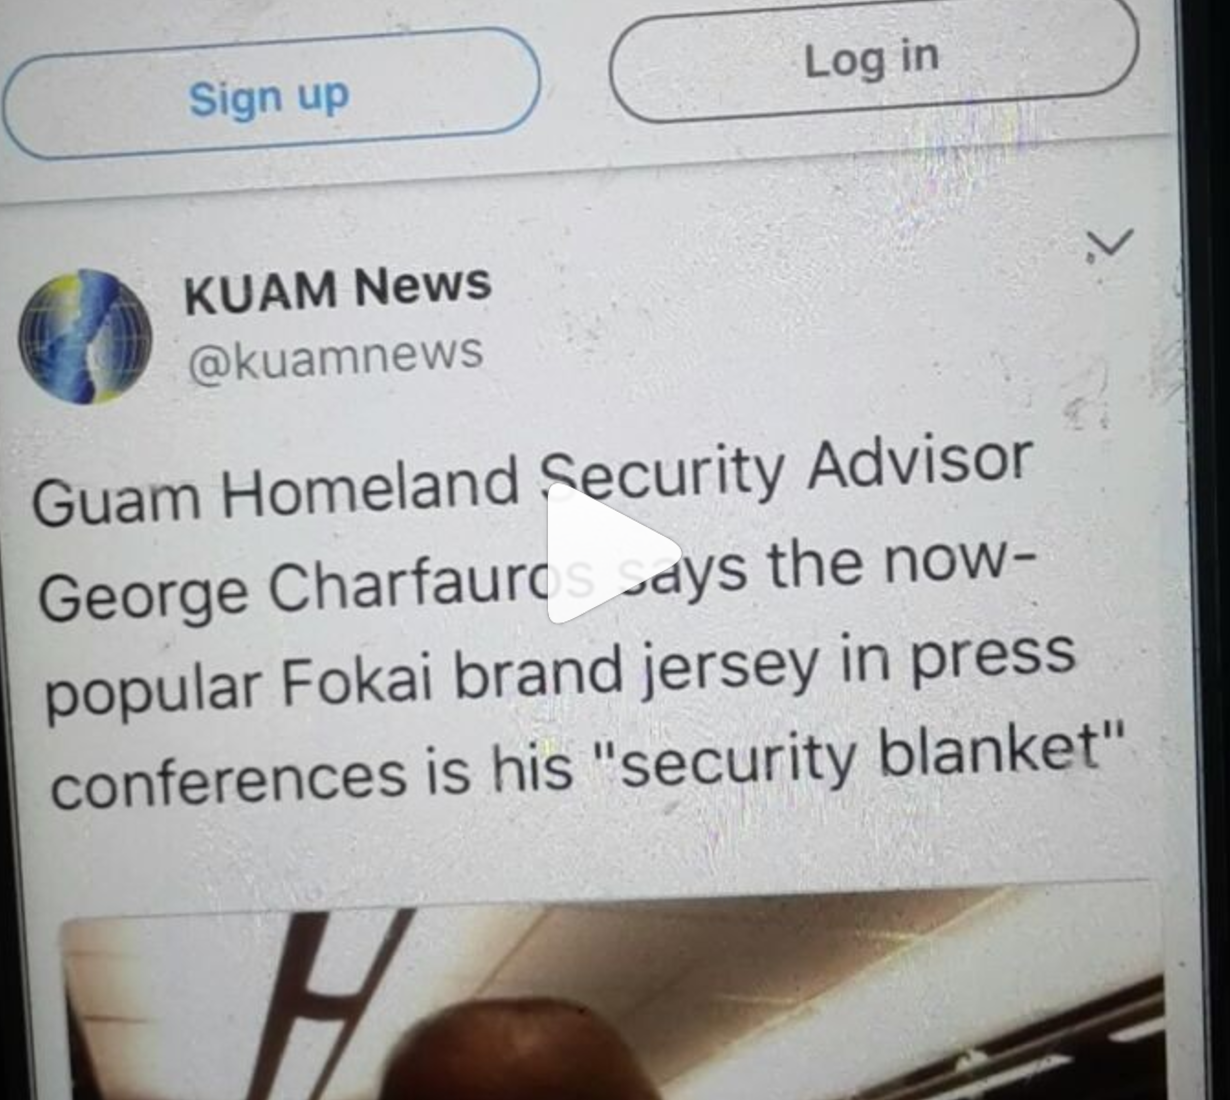 "Guam Homeland Security Advisor says Fokai Jersey is his ""Security Blanket"""